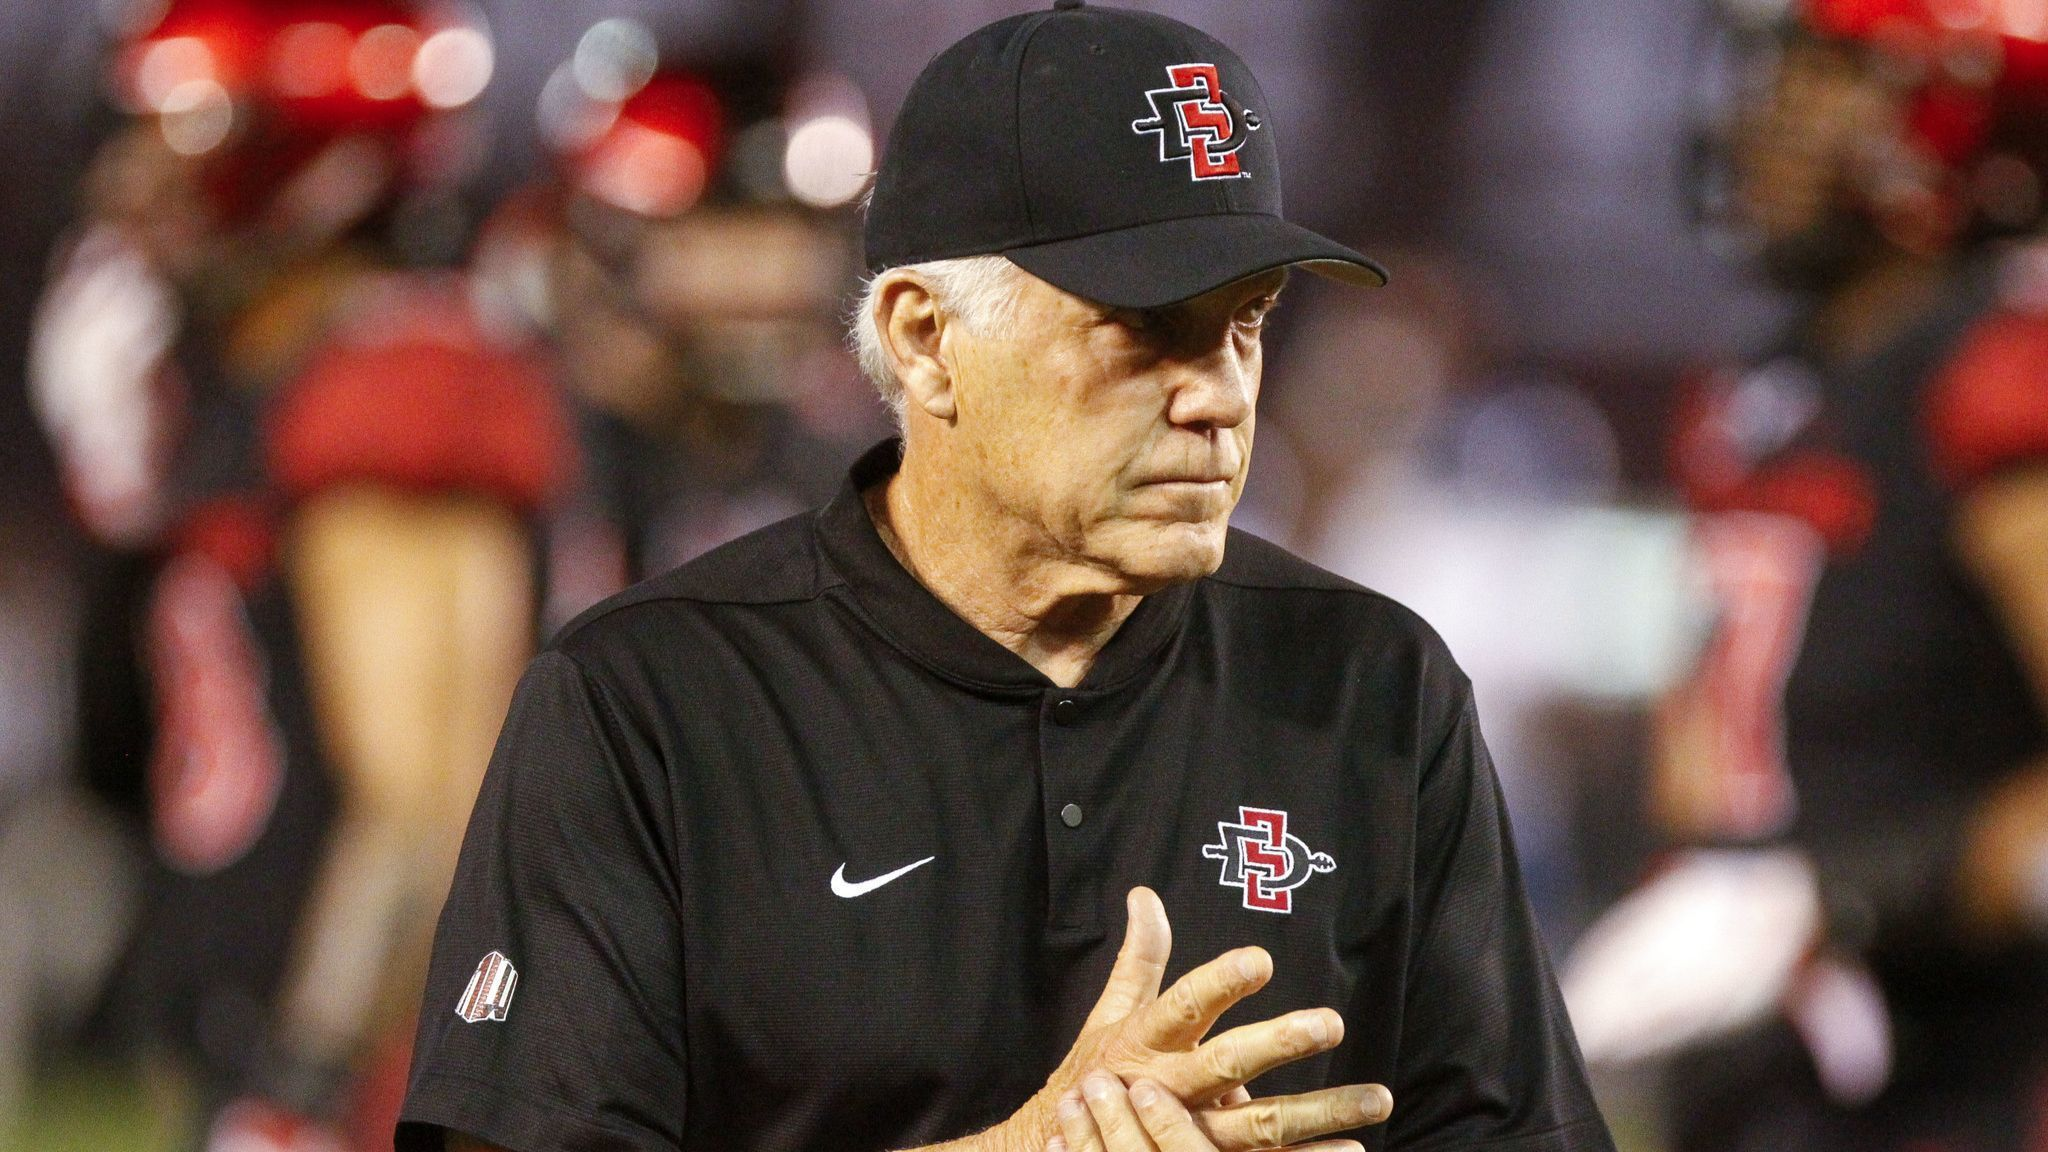 Aztecs could drive other teams crazy if it turned to wishbone